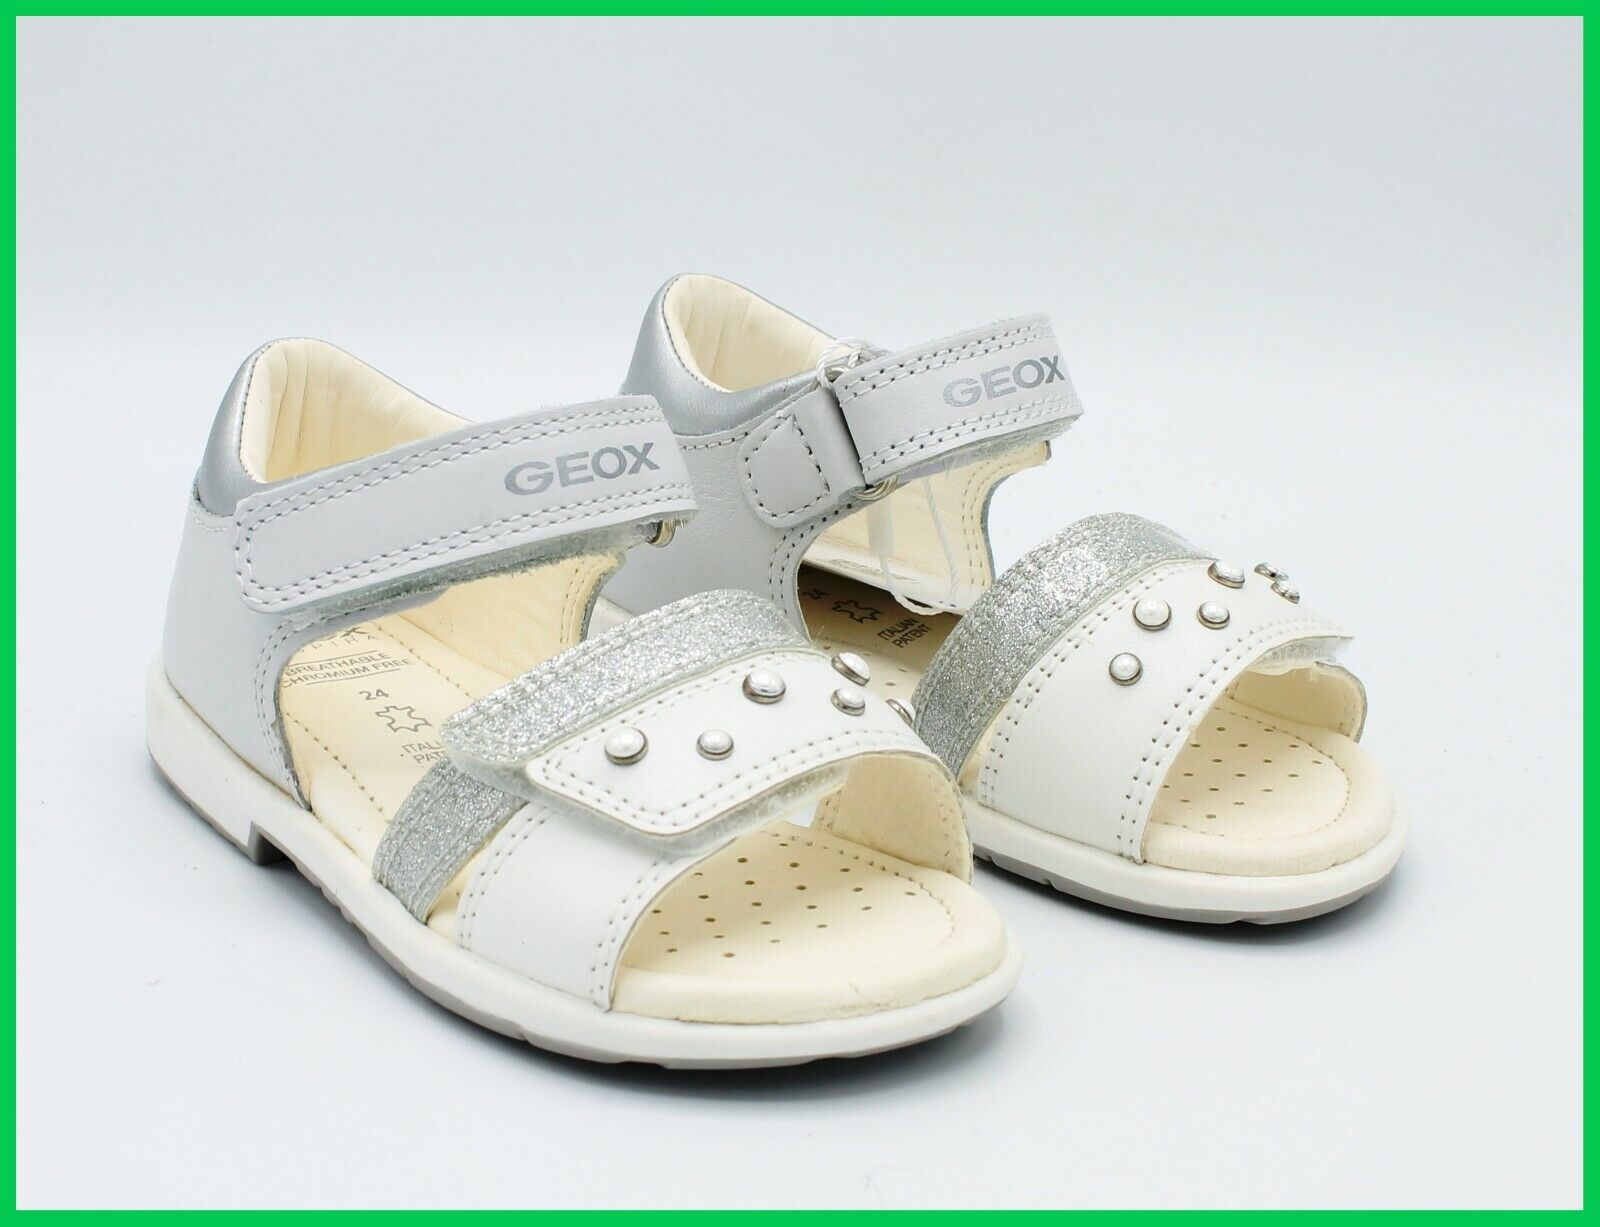 Geox Sandals Baby Leather Elegant First Steps Ceremony Shoes for Baby Girl